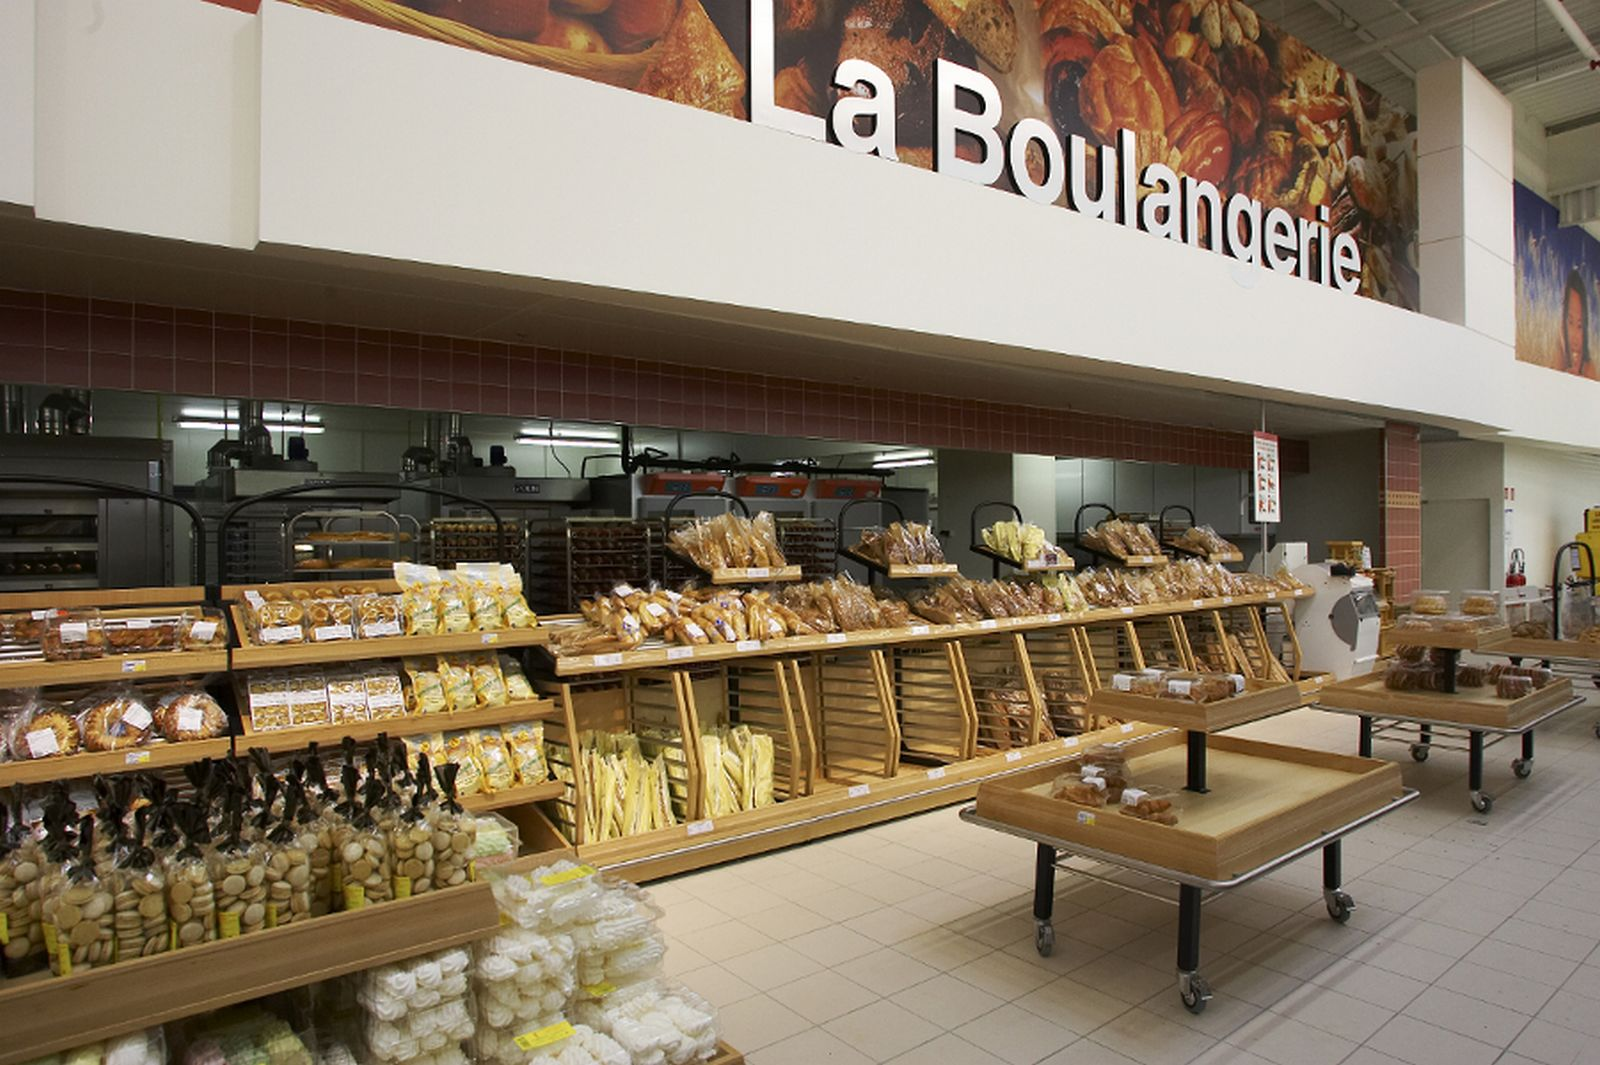 Larbaletier gamme boulangerie viennoiserie p tisserie - Decoration boulangerie patisserie ...